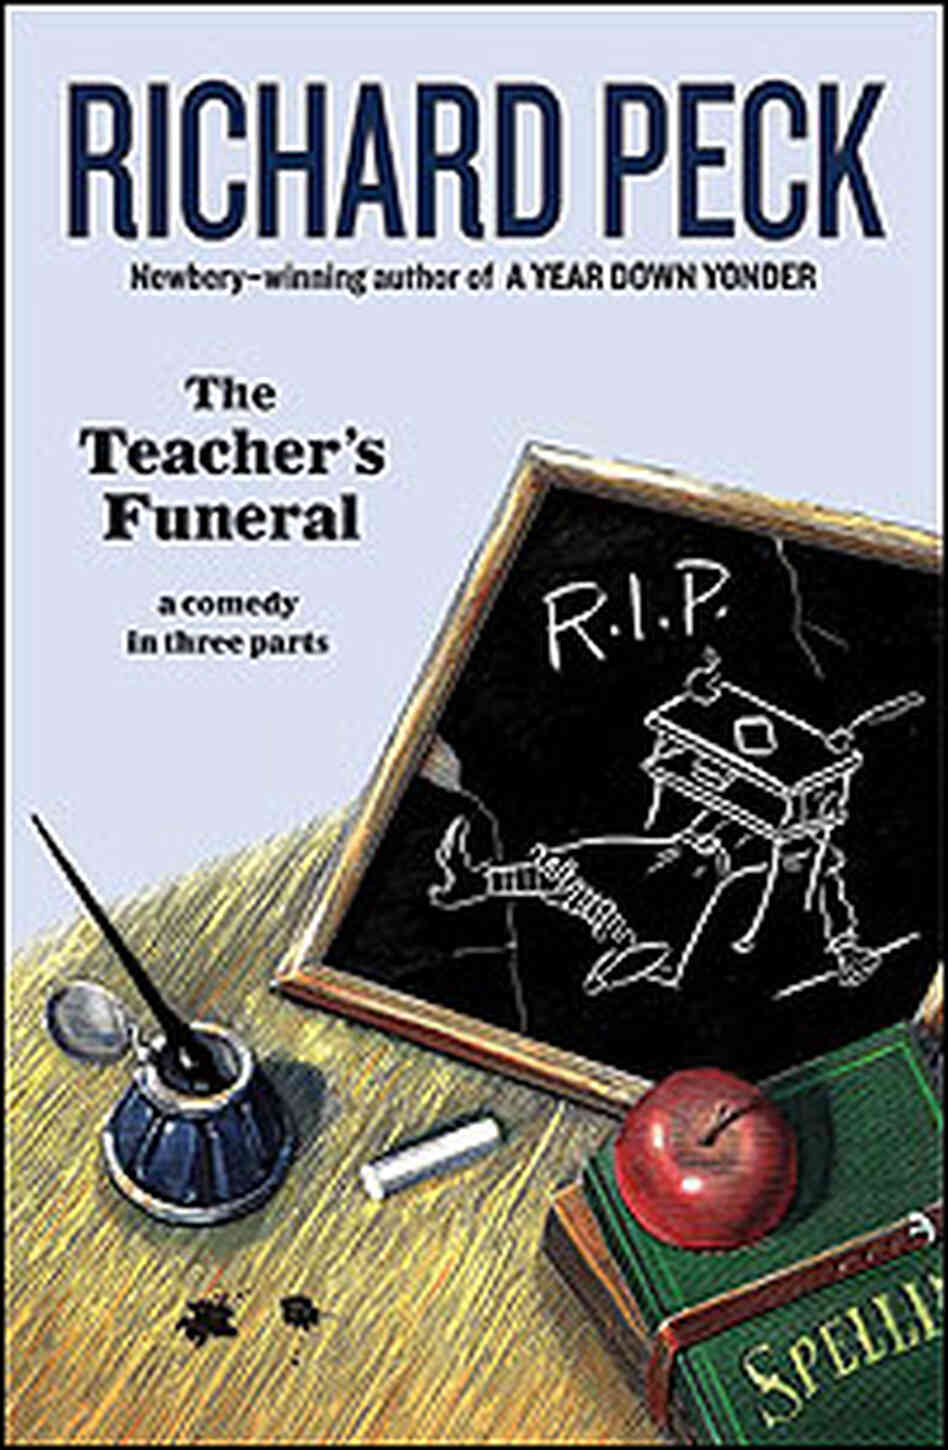 Cover Image: The Teacher's Funeral